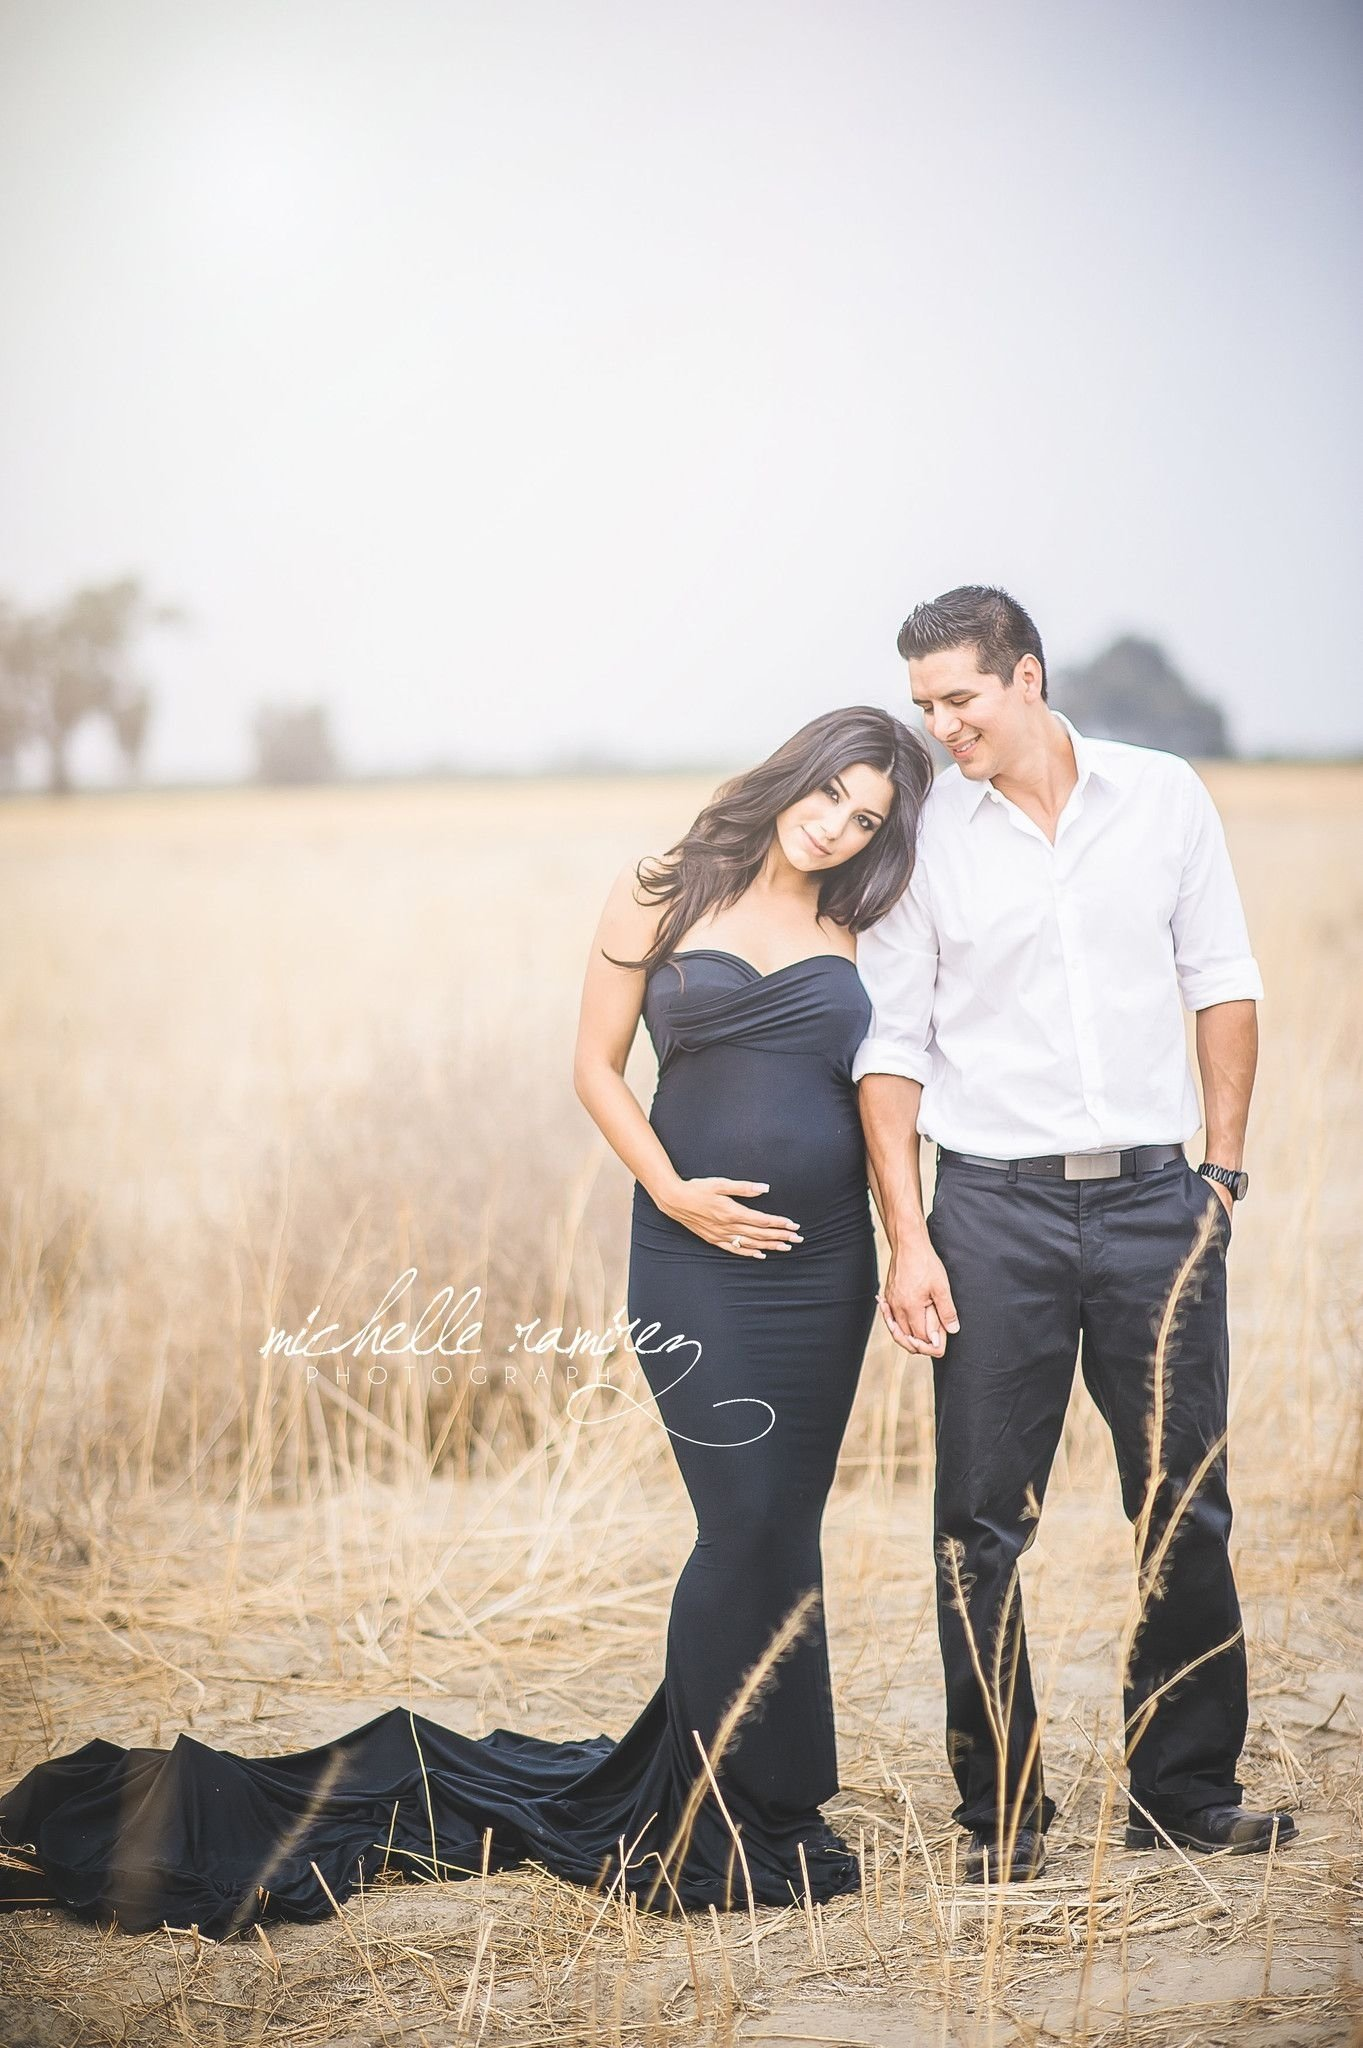 10 Amazing Maternity Photo Shoot Outfit Ideas how to dress for the best maternity photos 1 2020